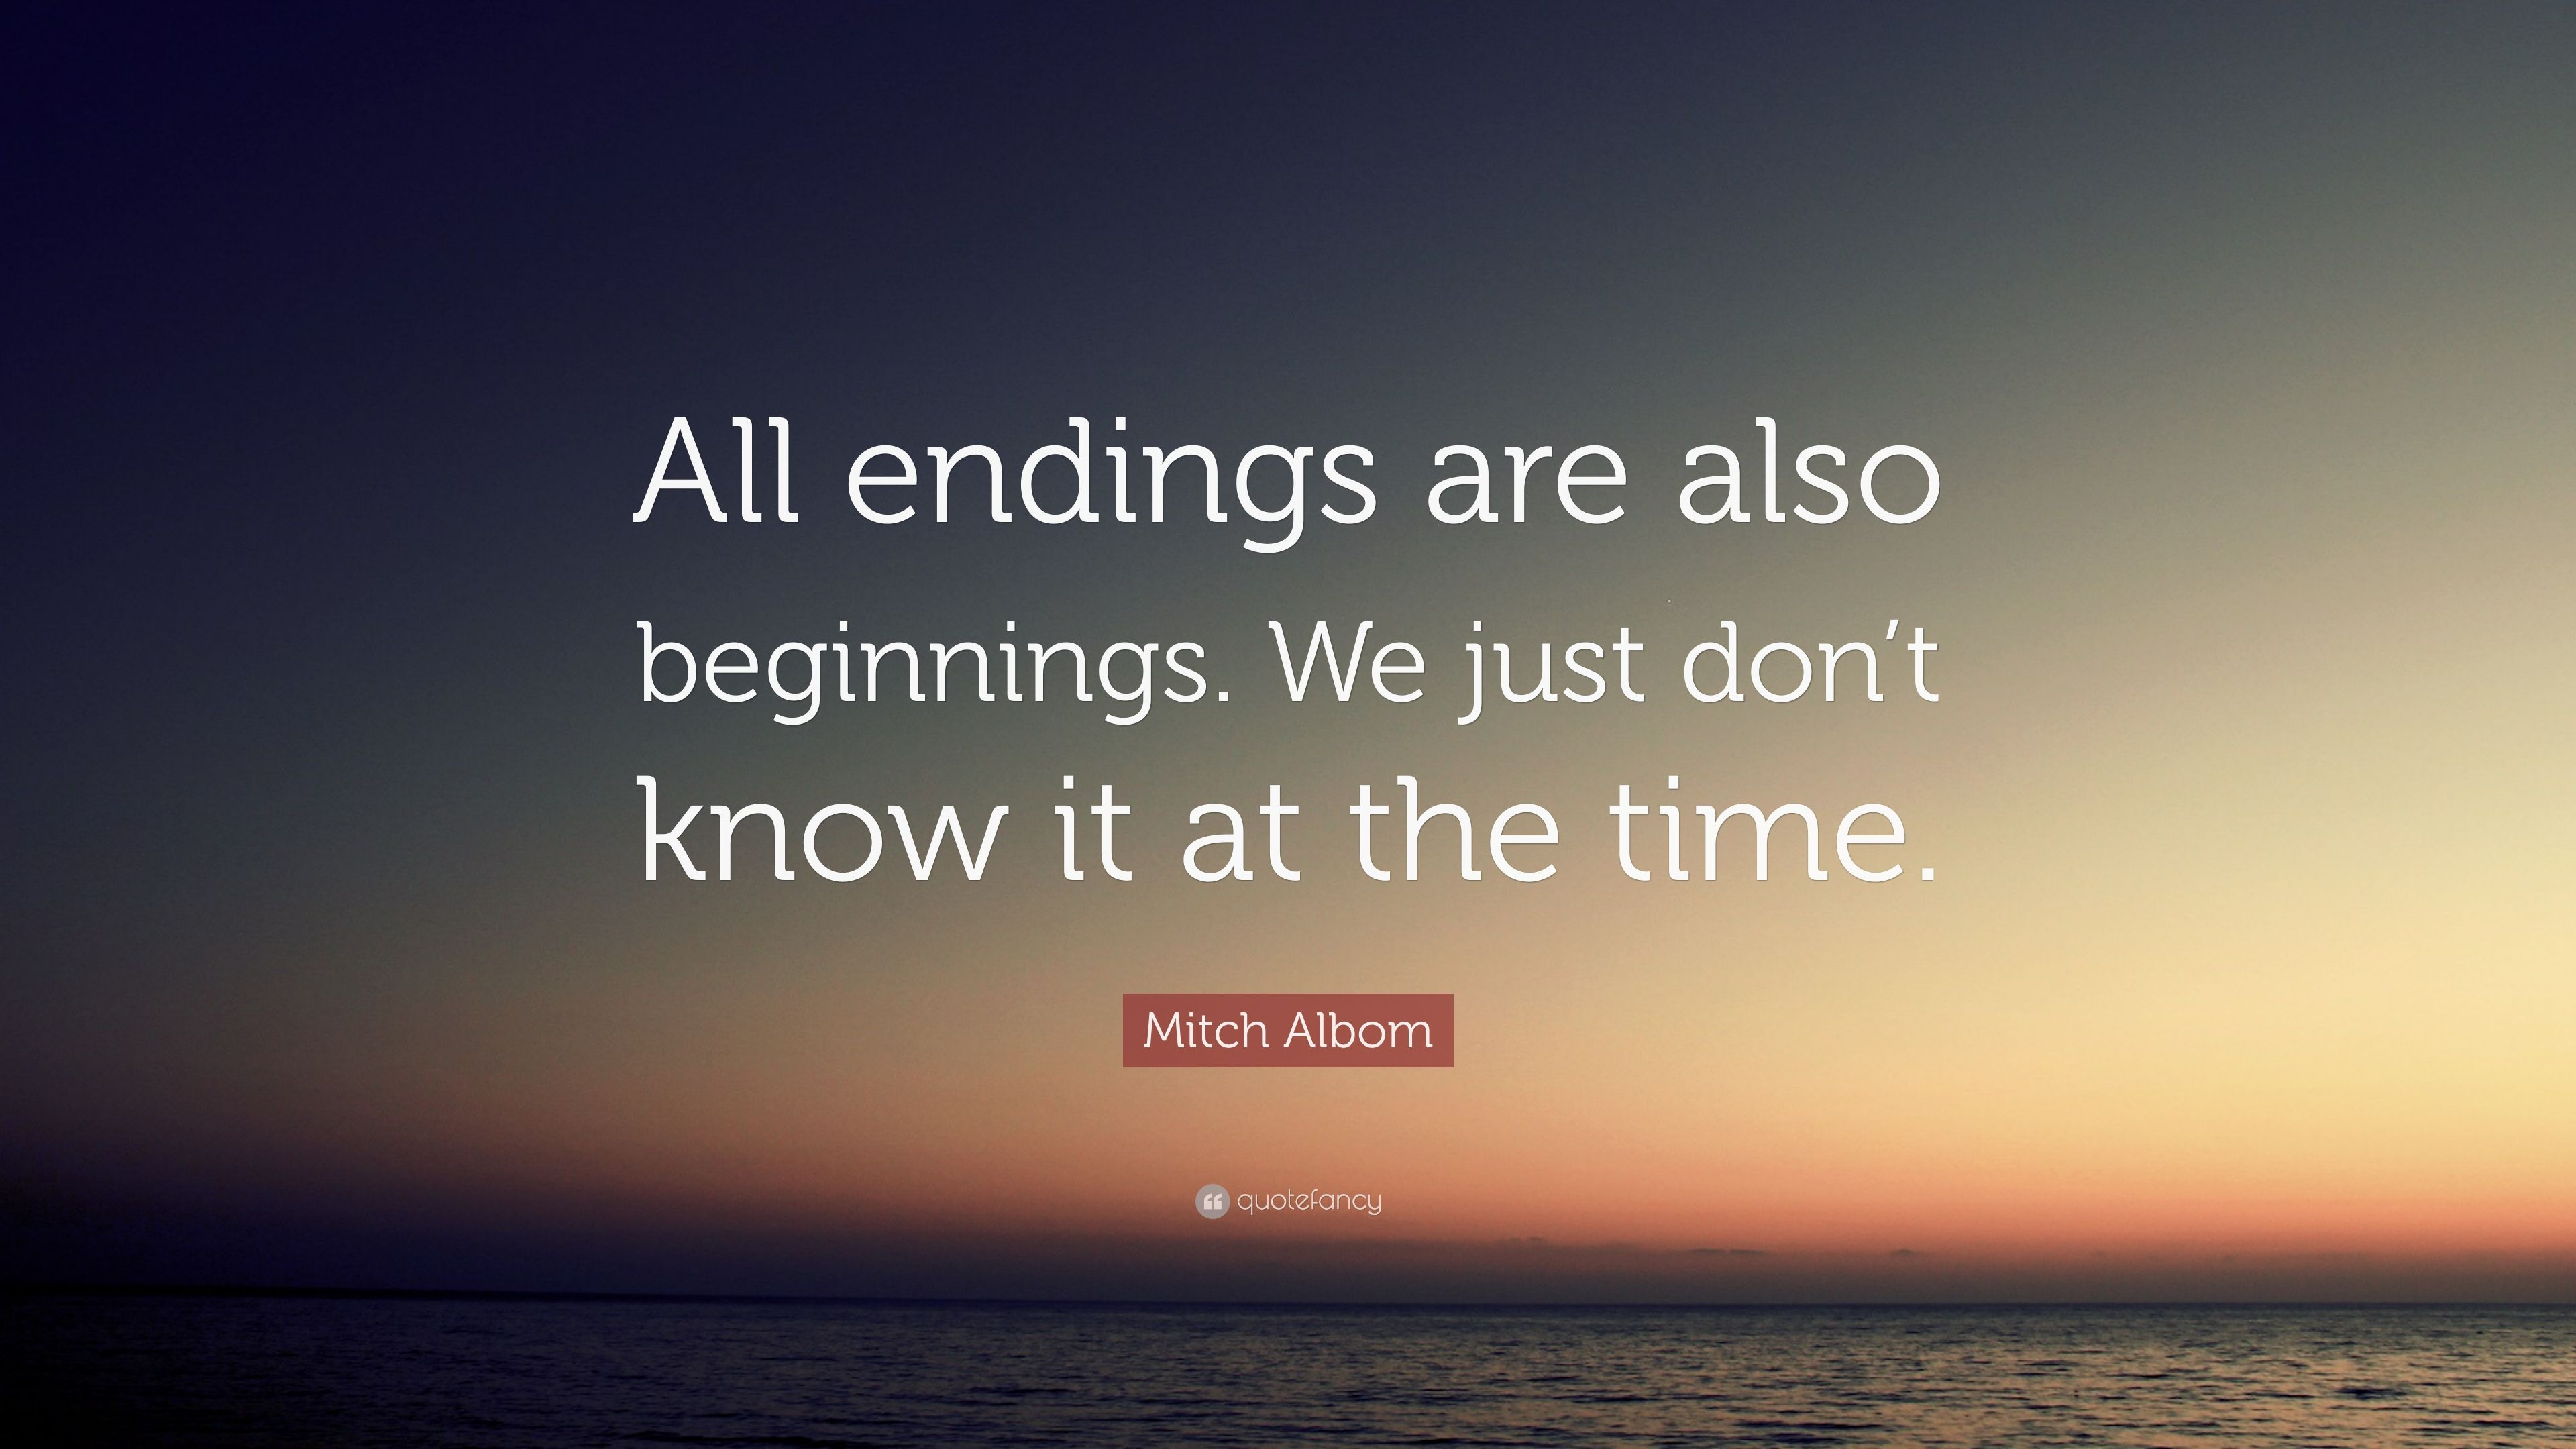 Awesome Mitch Albom Quote: U201cAll Endings Are Also Beginnings. We Just Donu0027t